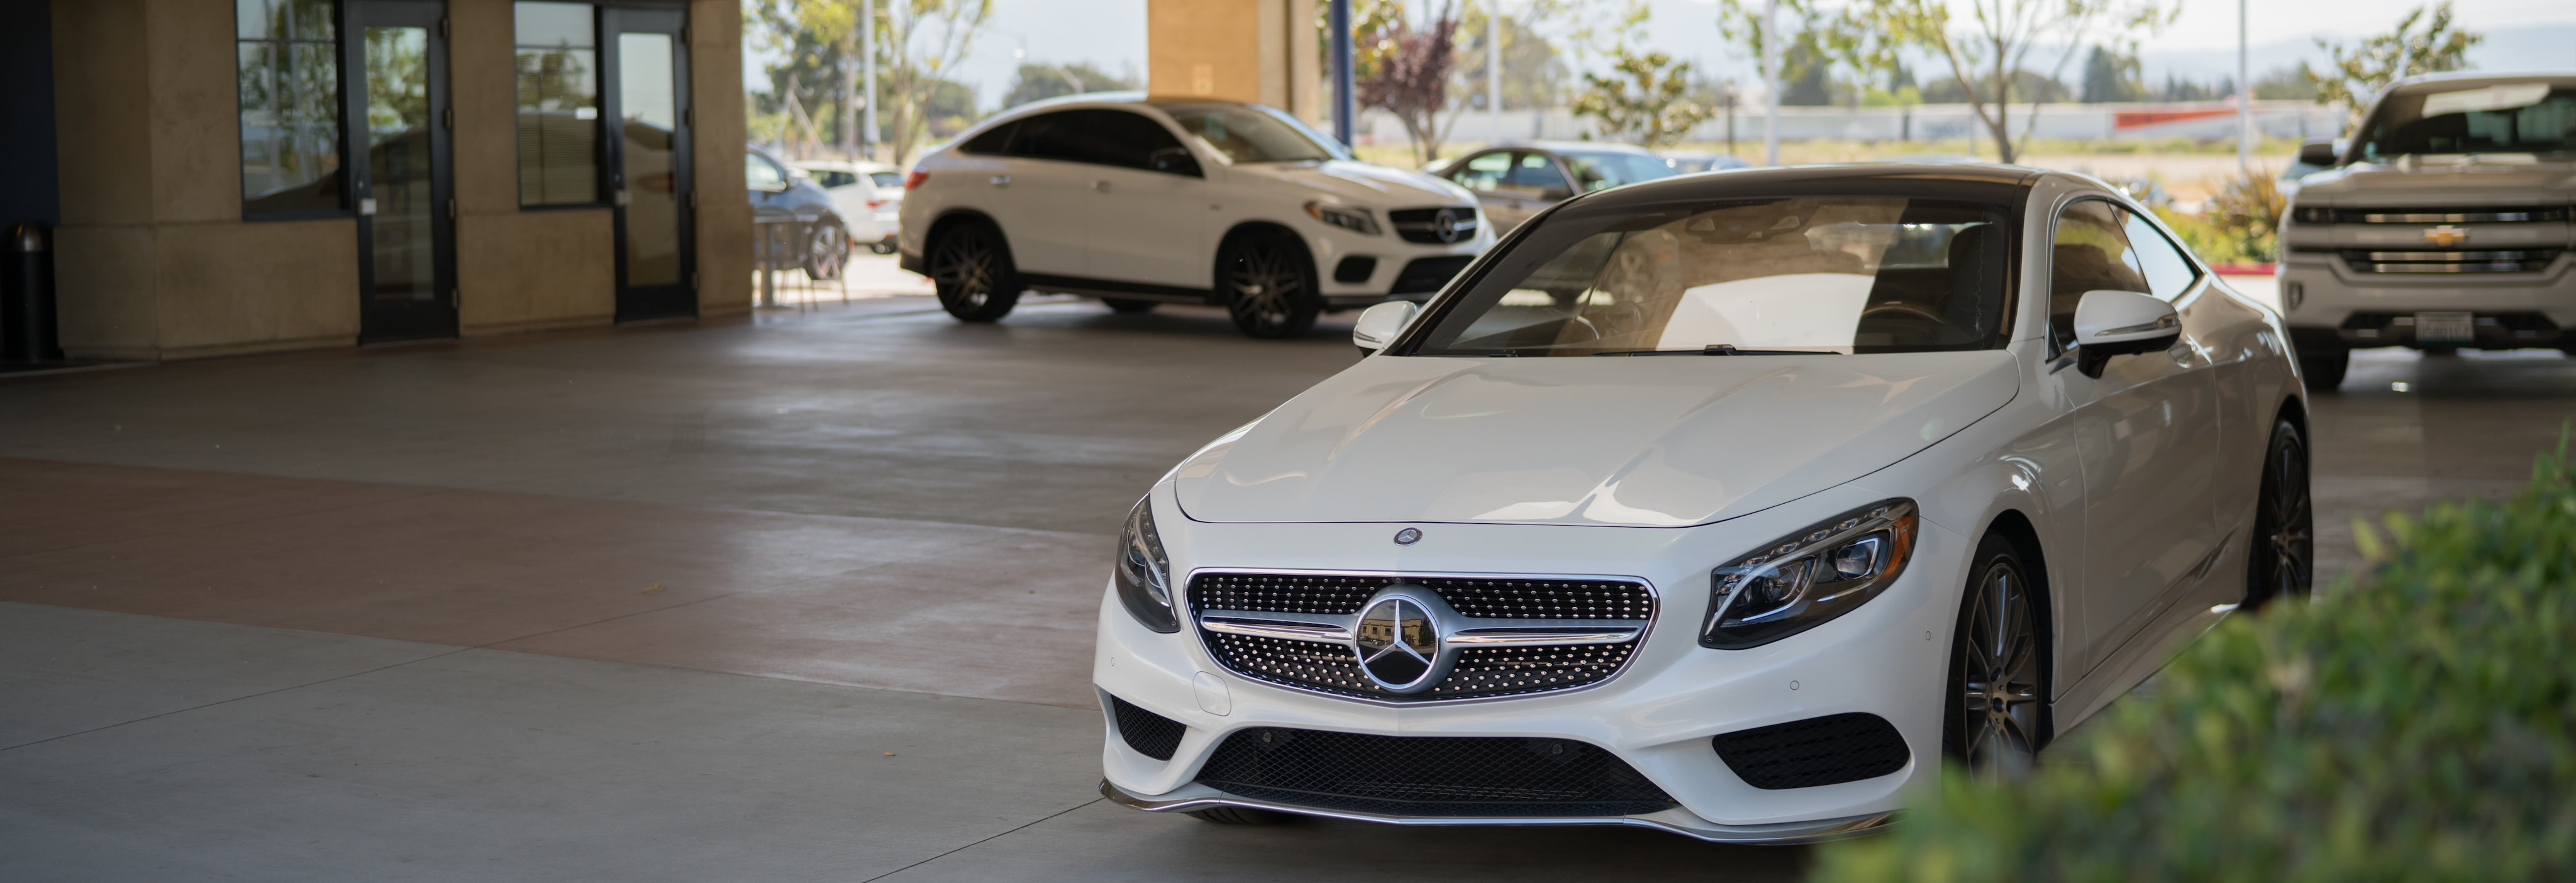 Mercedes San Jose >> Mercedes Benz Service Near Me In San Jose Ca Mercedes Benz Of San